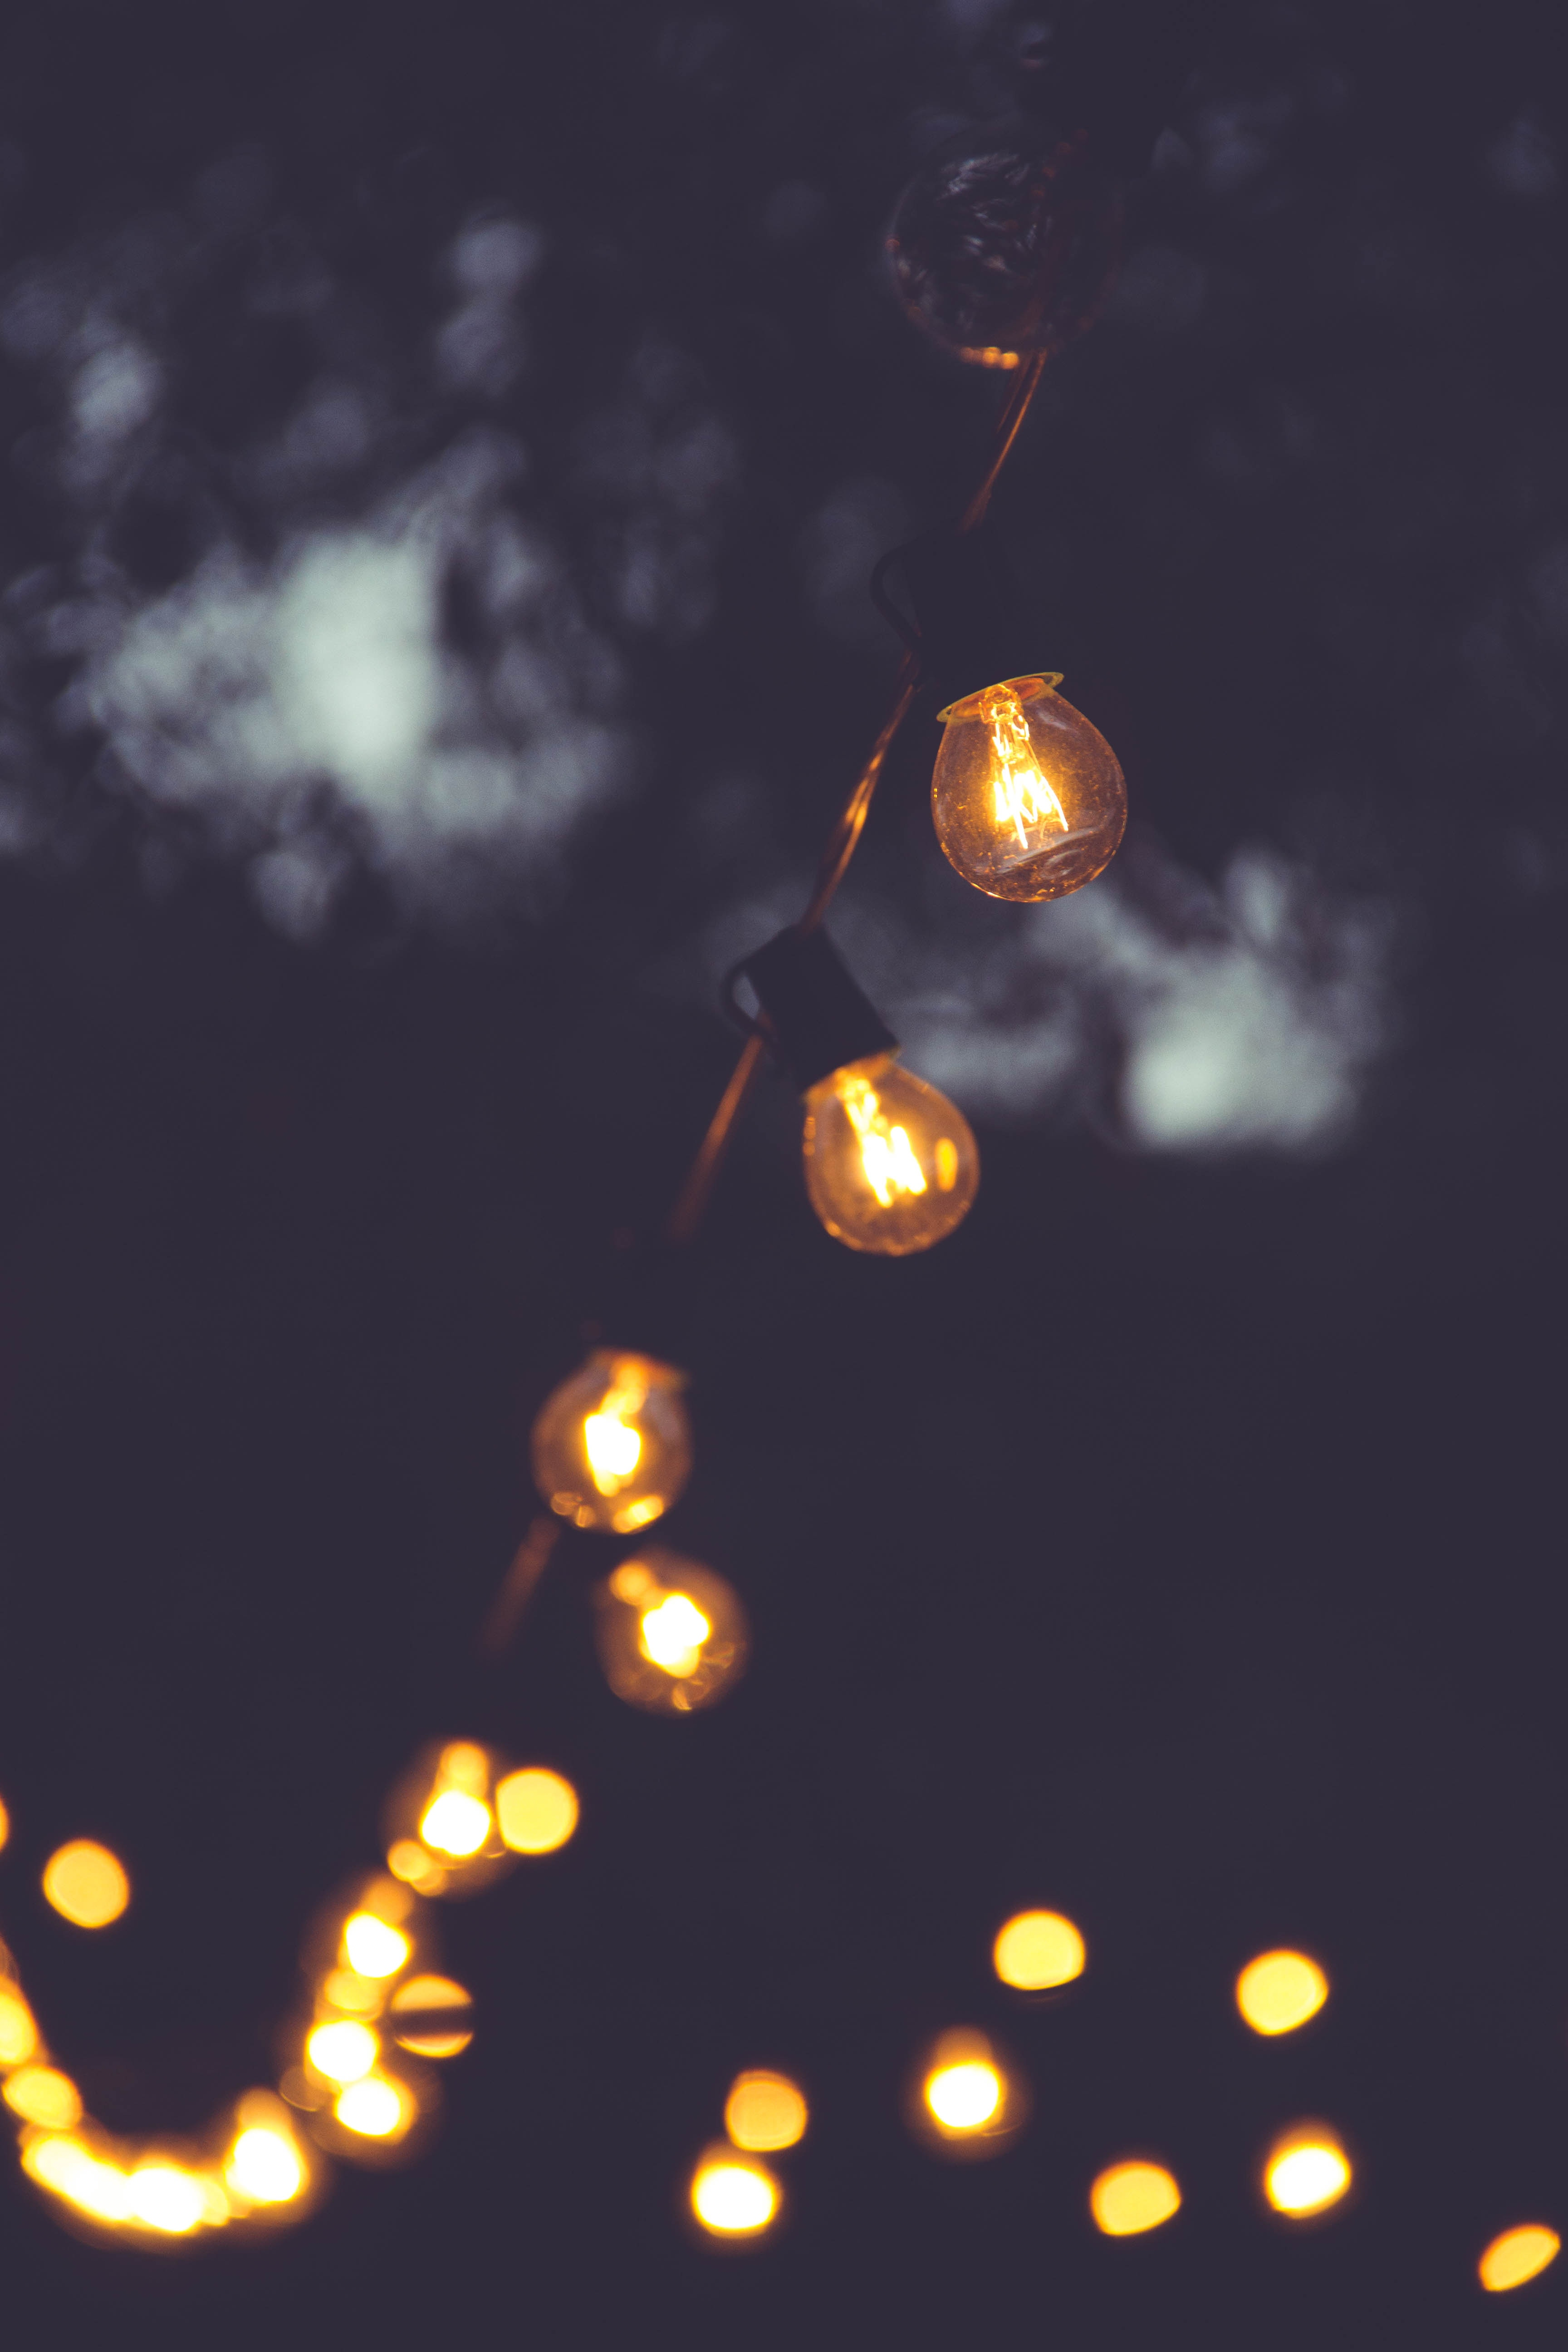 98694 download wallpaper Dark, Lamps, Lamp, Electricity, Lighting, Illumination screensavers and pictures for free